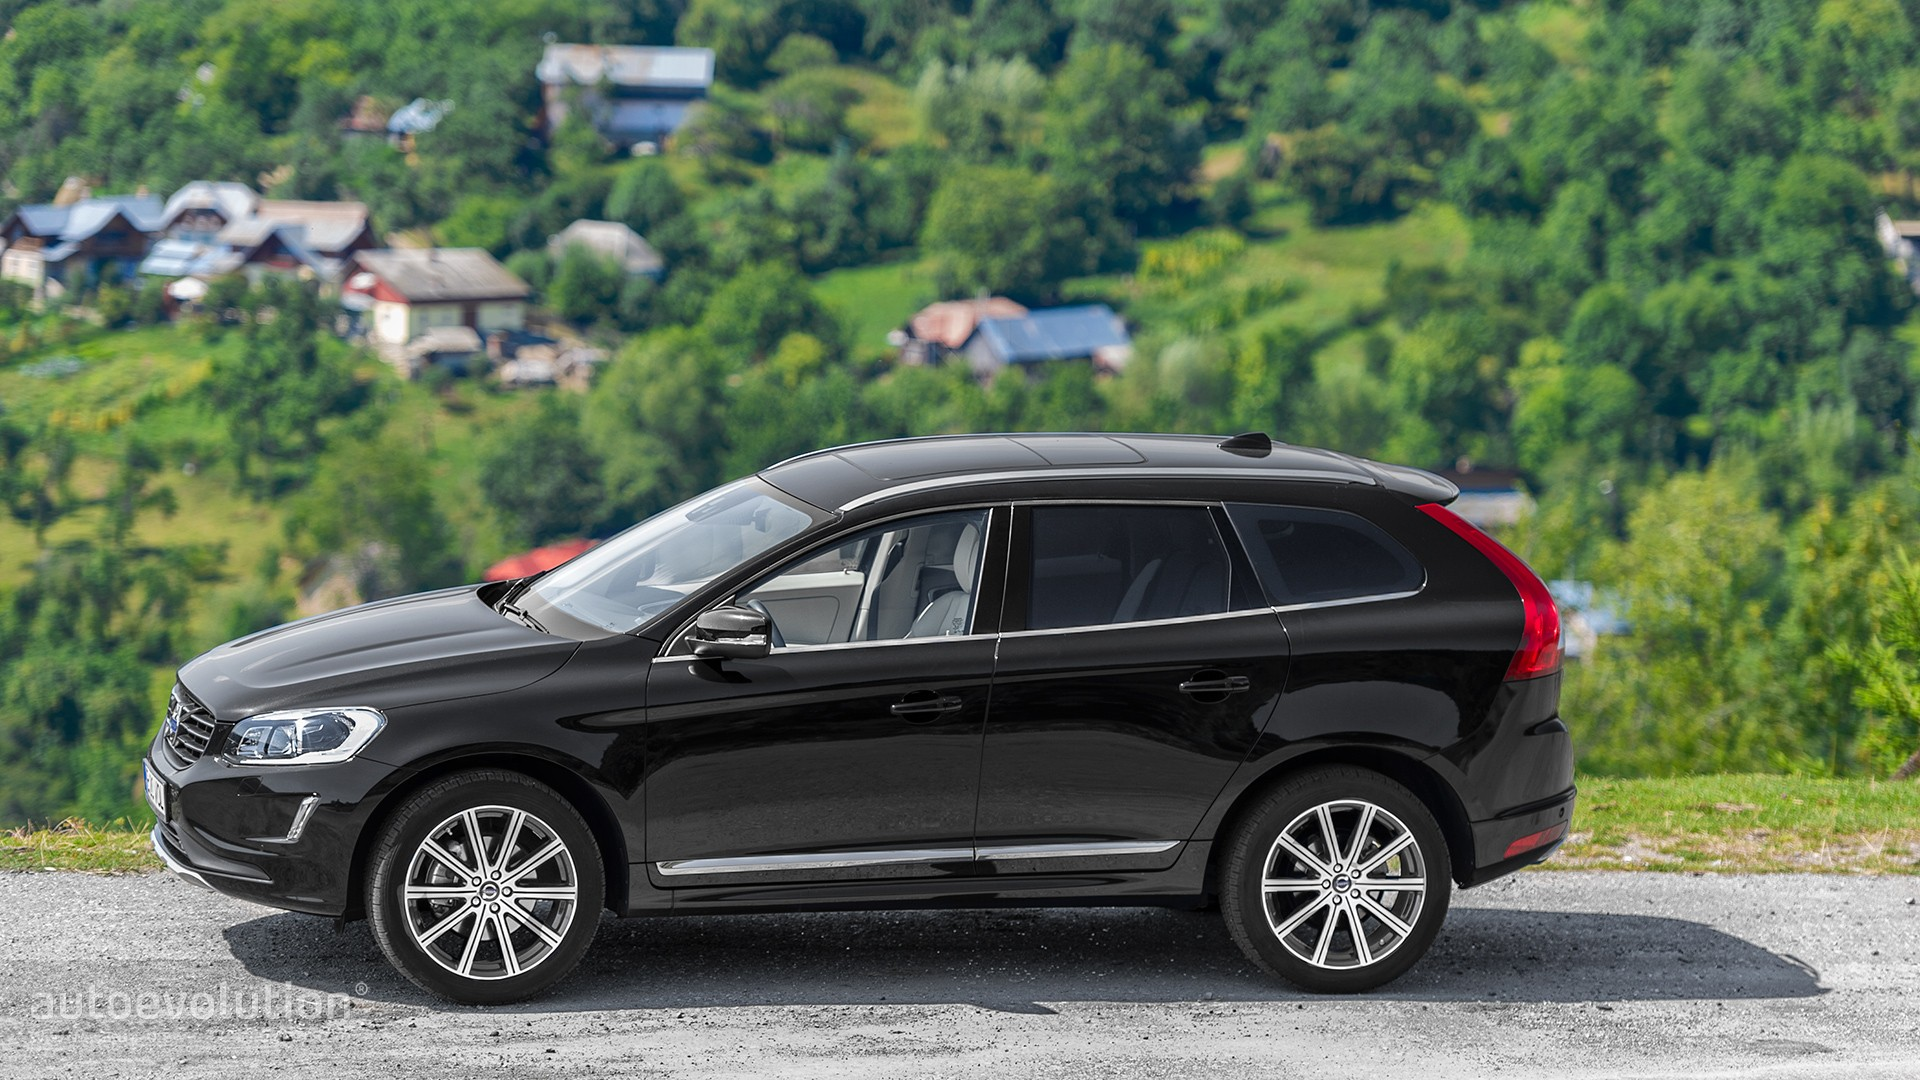 VOLVO XC60 Review - autoevolution